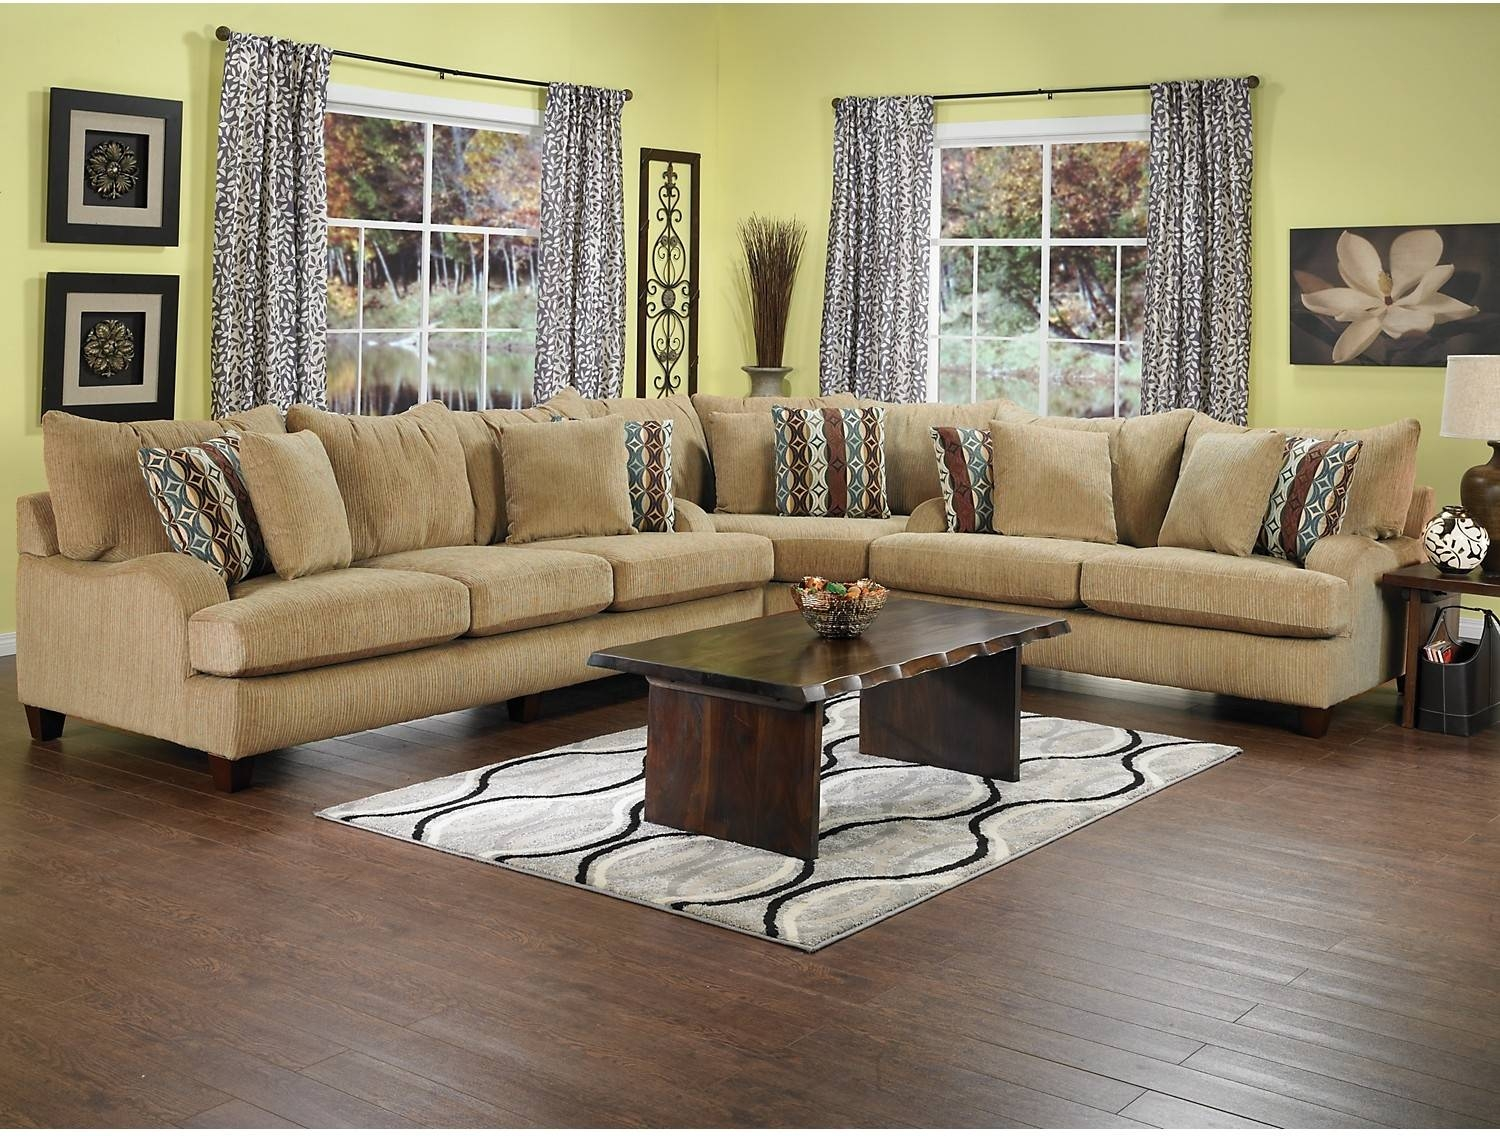 Cozy Chenille Sectional Sofas 13 For 10 Foot Sectional Sofa With Intended For 10 Foot Sectional Sofa (View 10 of 30)